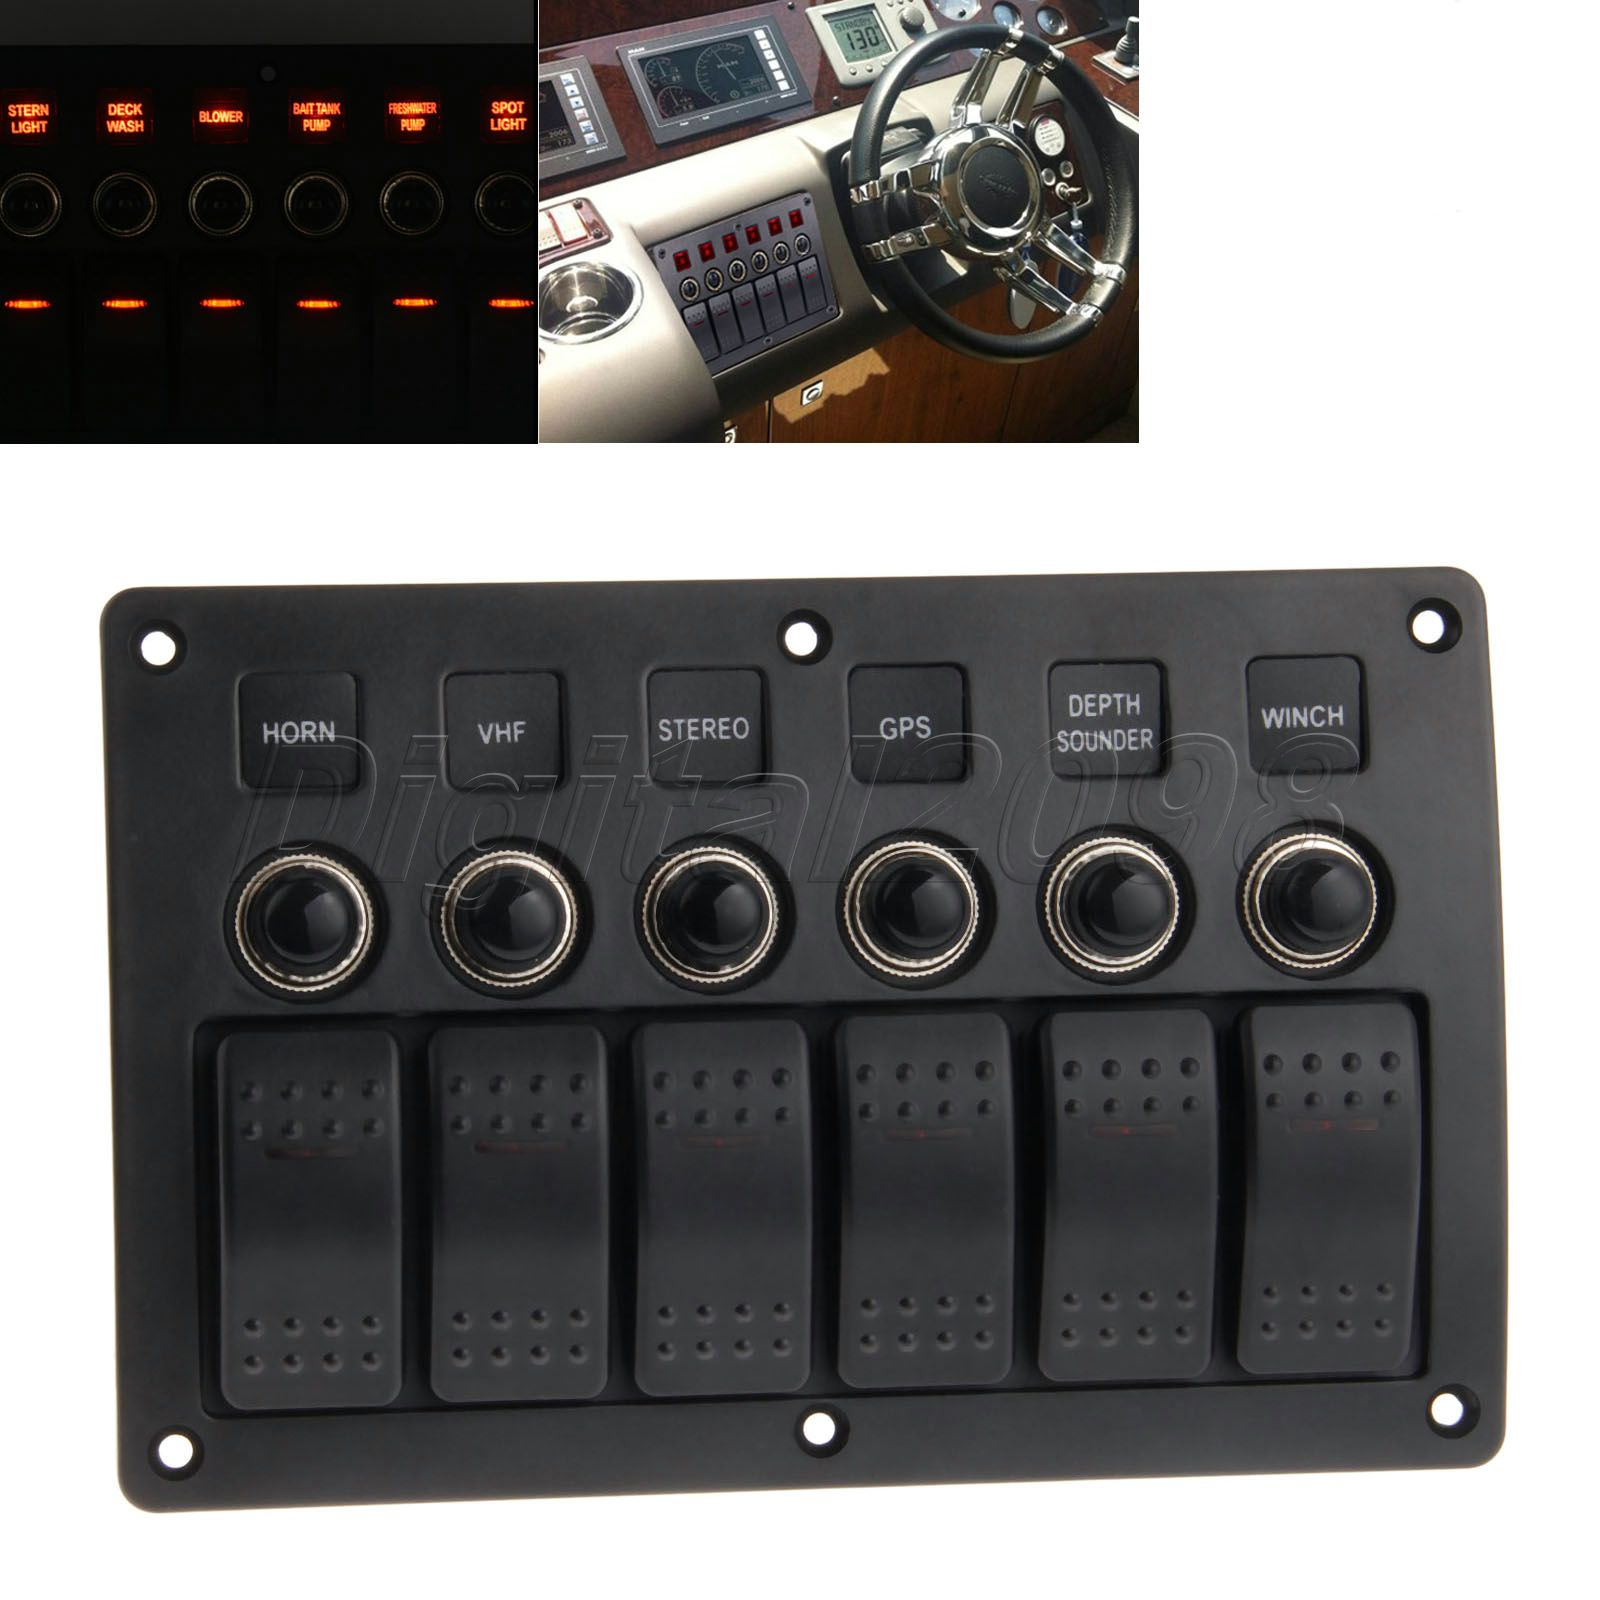 цена на Yetaha 6 Gang Rocker Switch Panel Car Marine Boat Circuit Breakers Overload Protected Car Switch Panel Red Led With Indicator